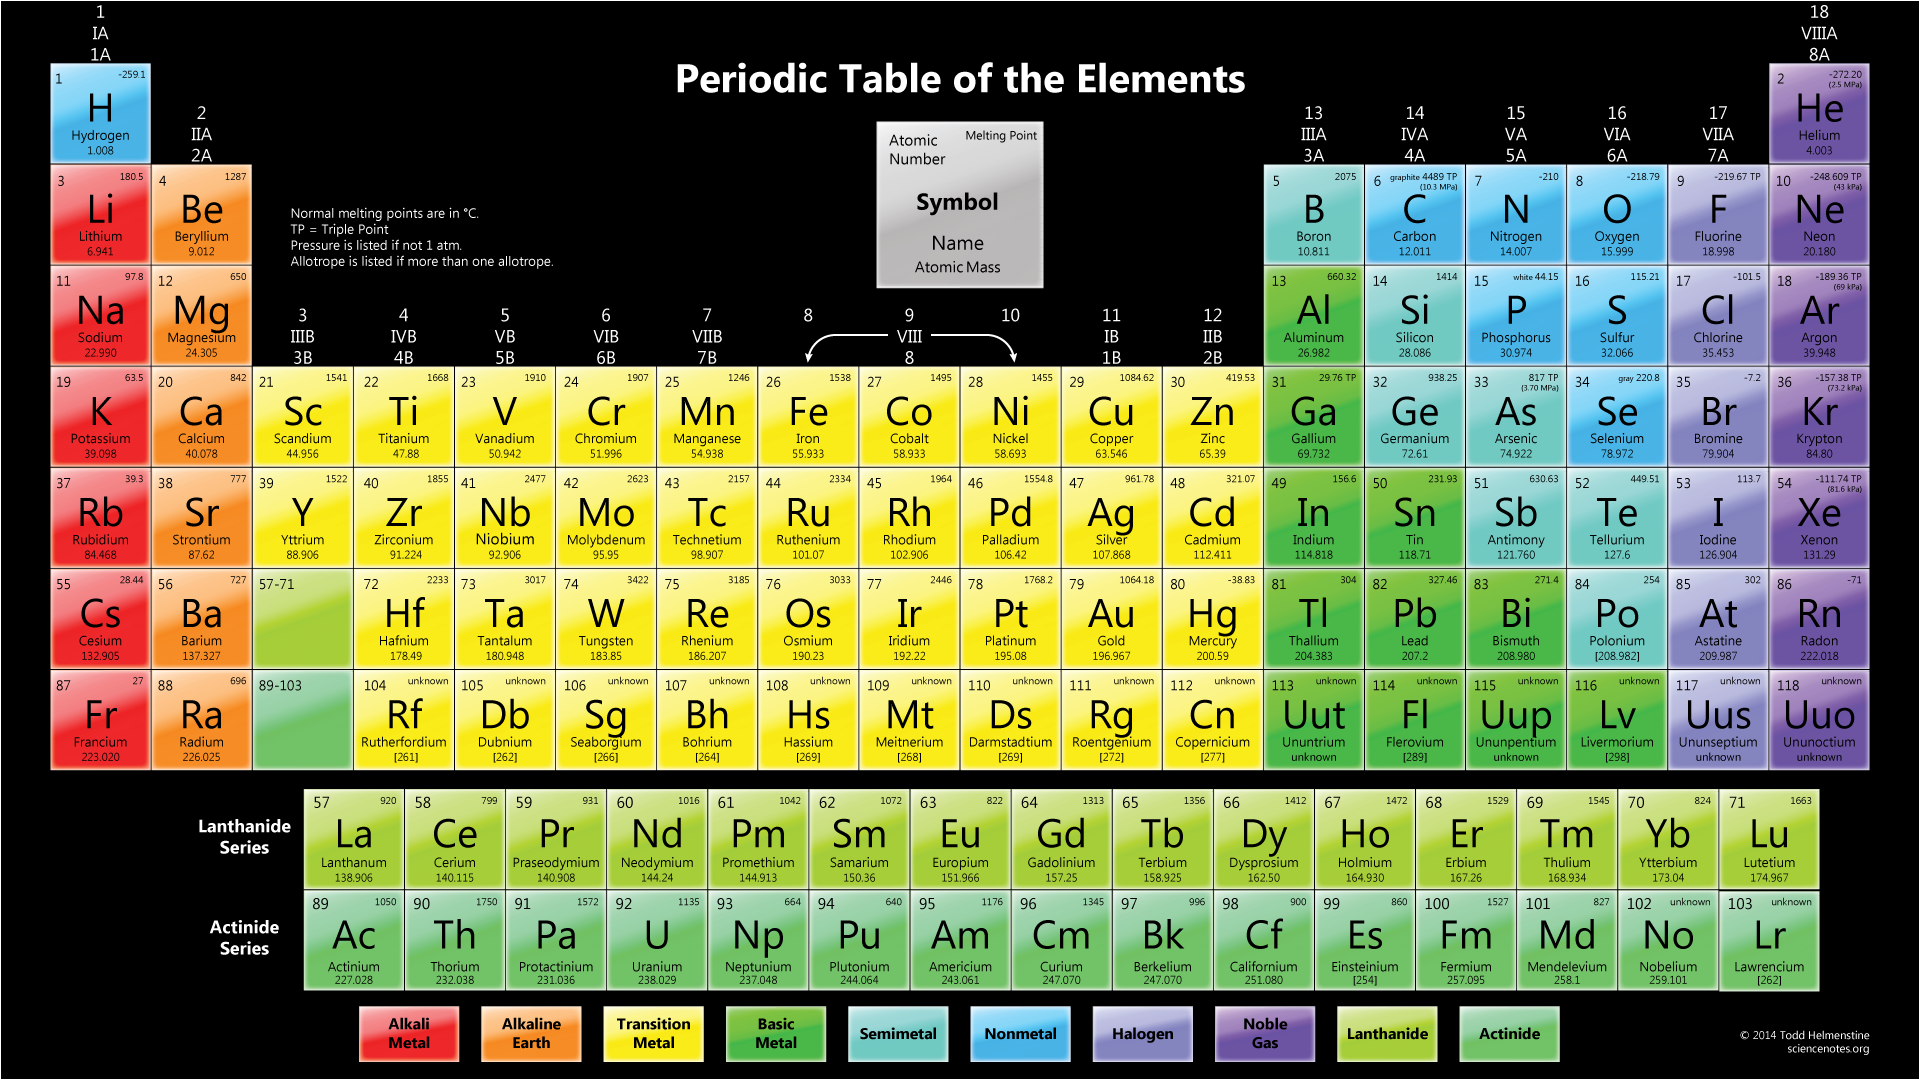 Printable periodic table elements symbol gamestrikefo Image collections